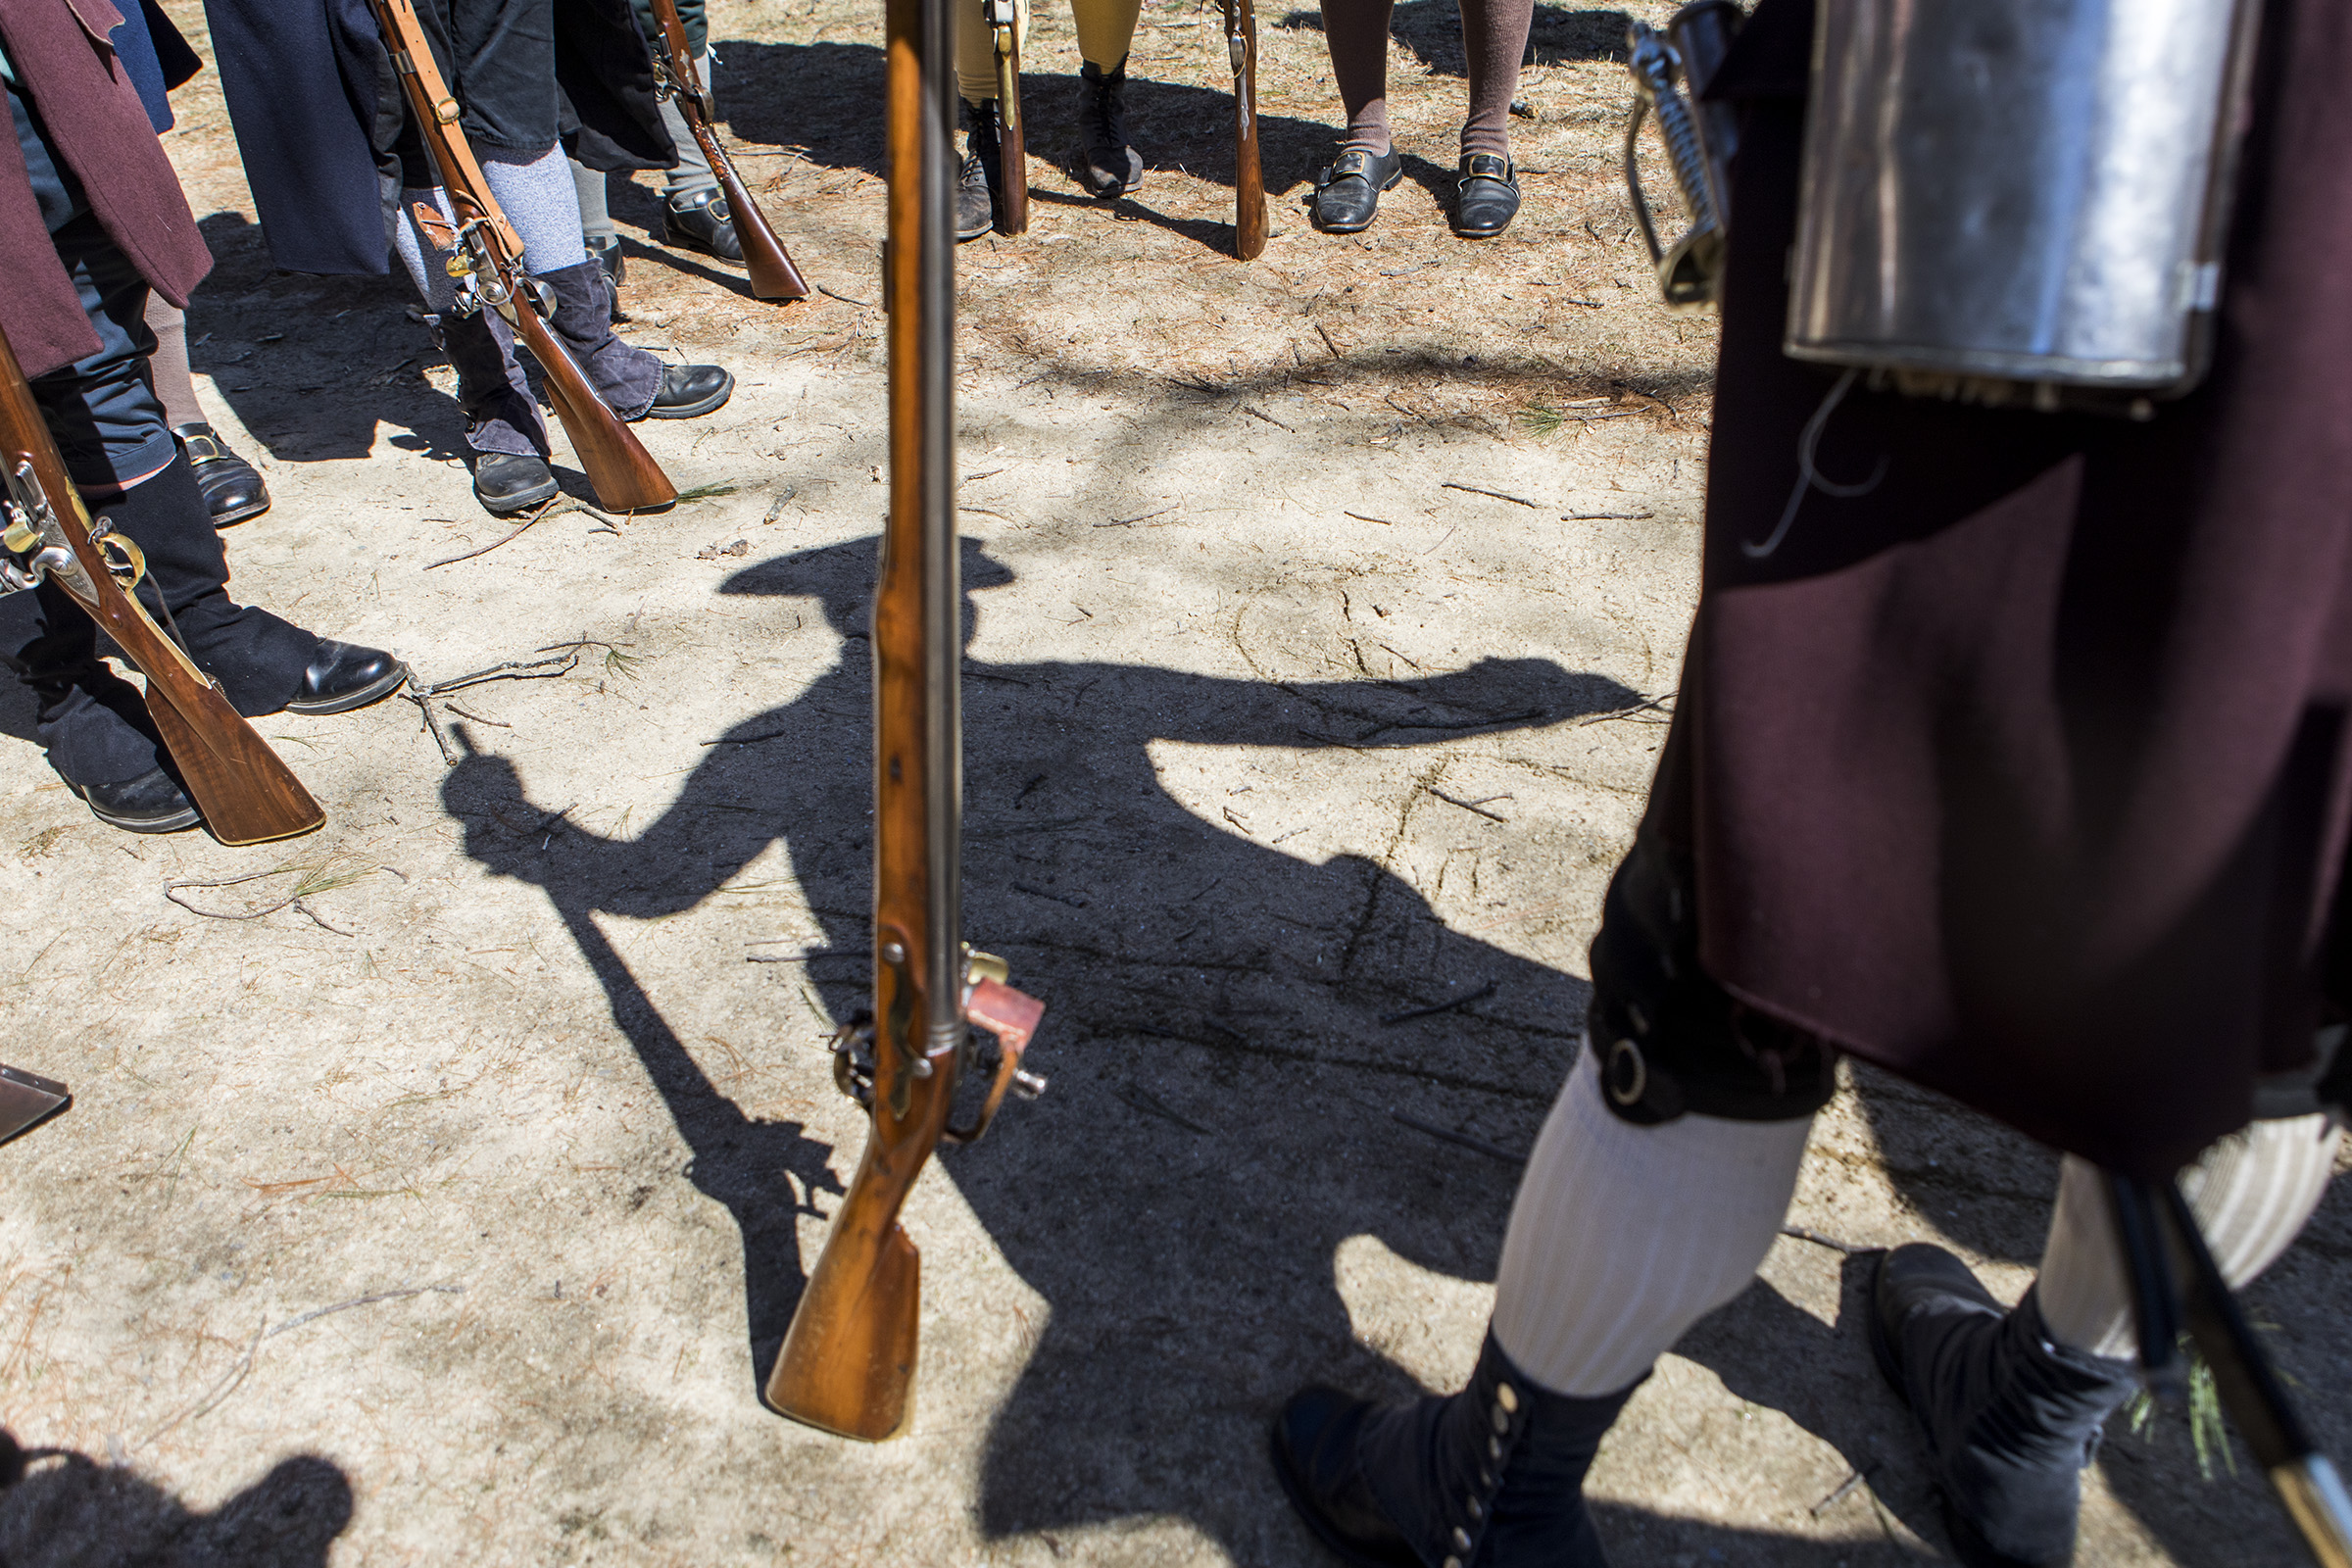 Steven Taskovics, Commander of the 4th Middlesex Militia, walks minutemen through the battle plan prior to Patriots' Day at the Minuteman National Park on Mar. 31, 2018.